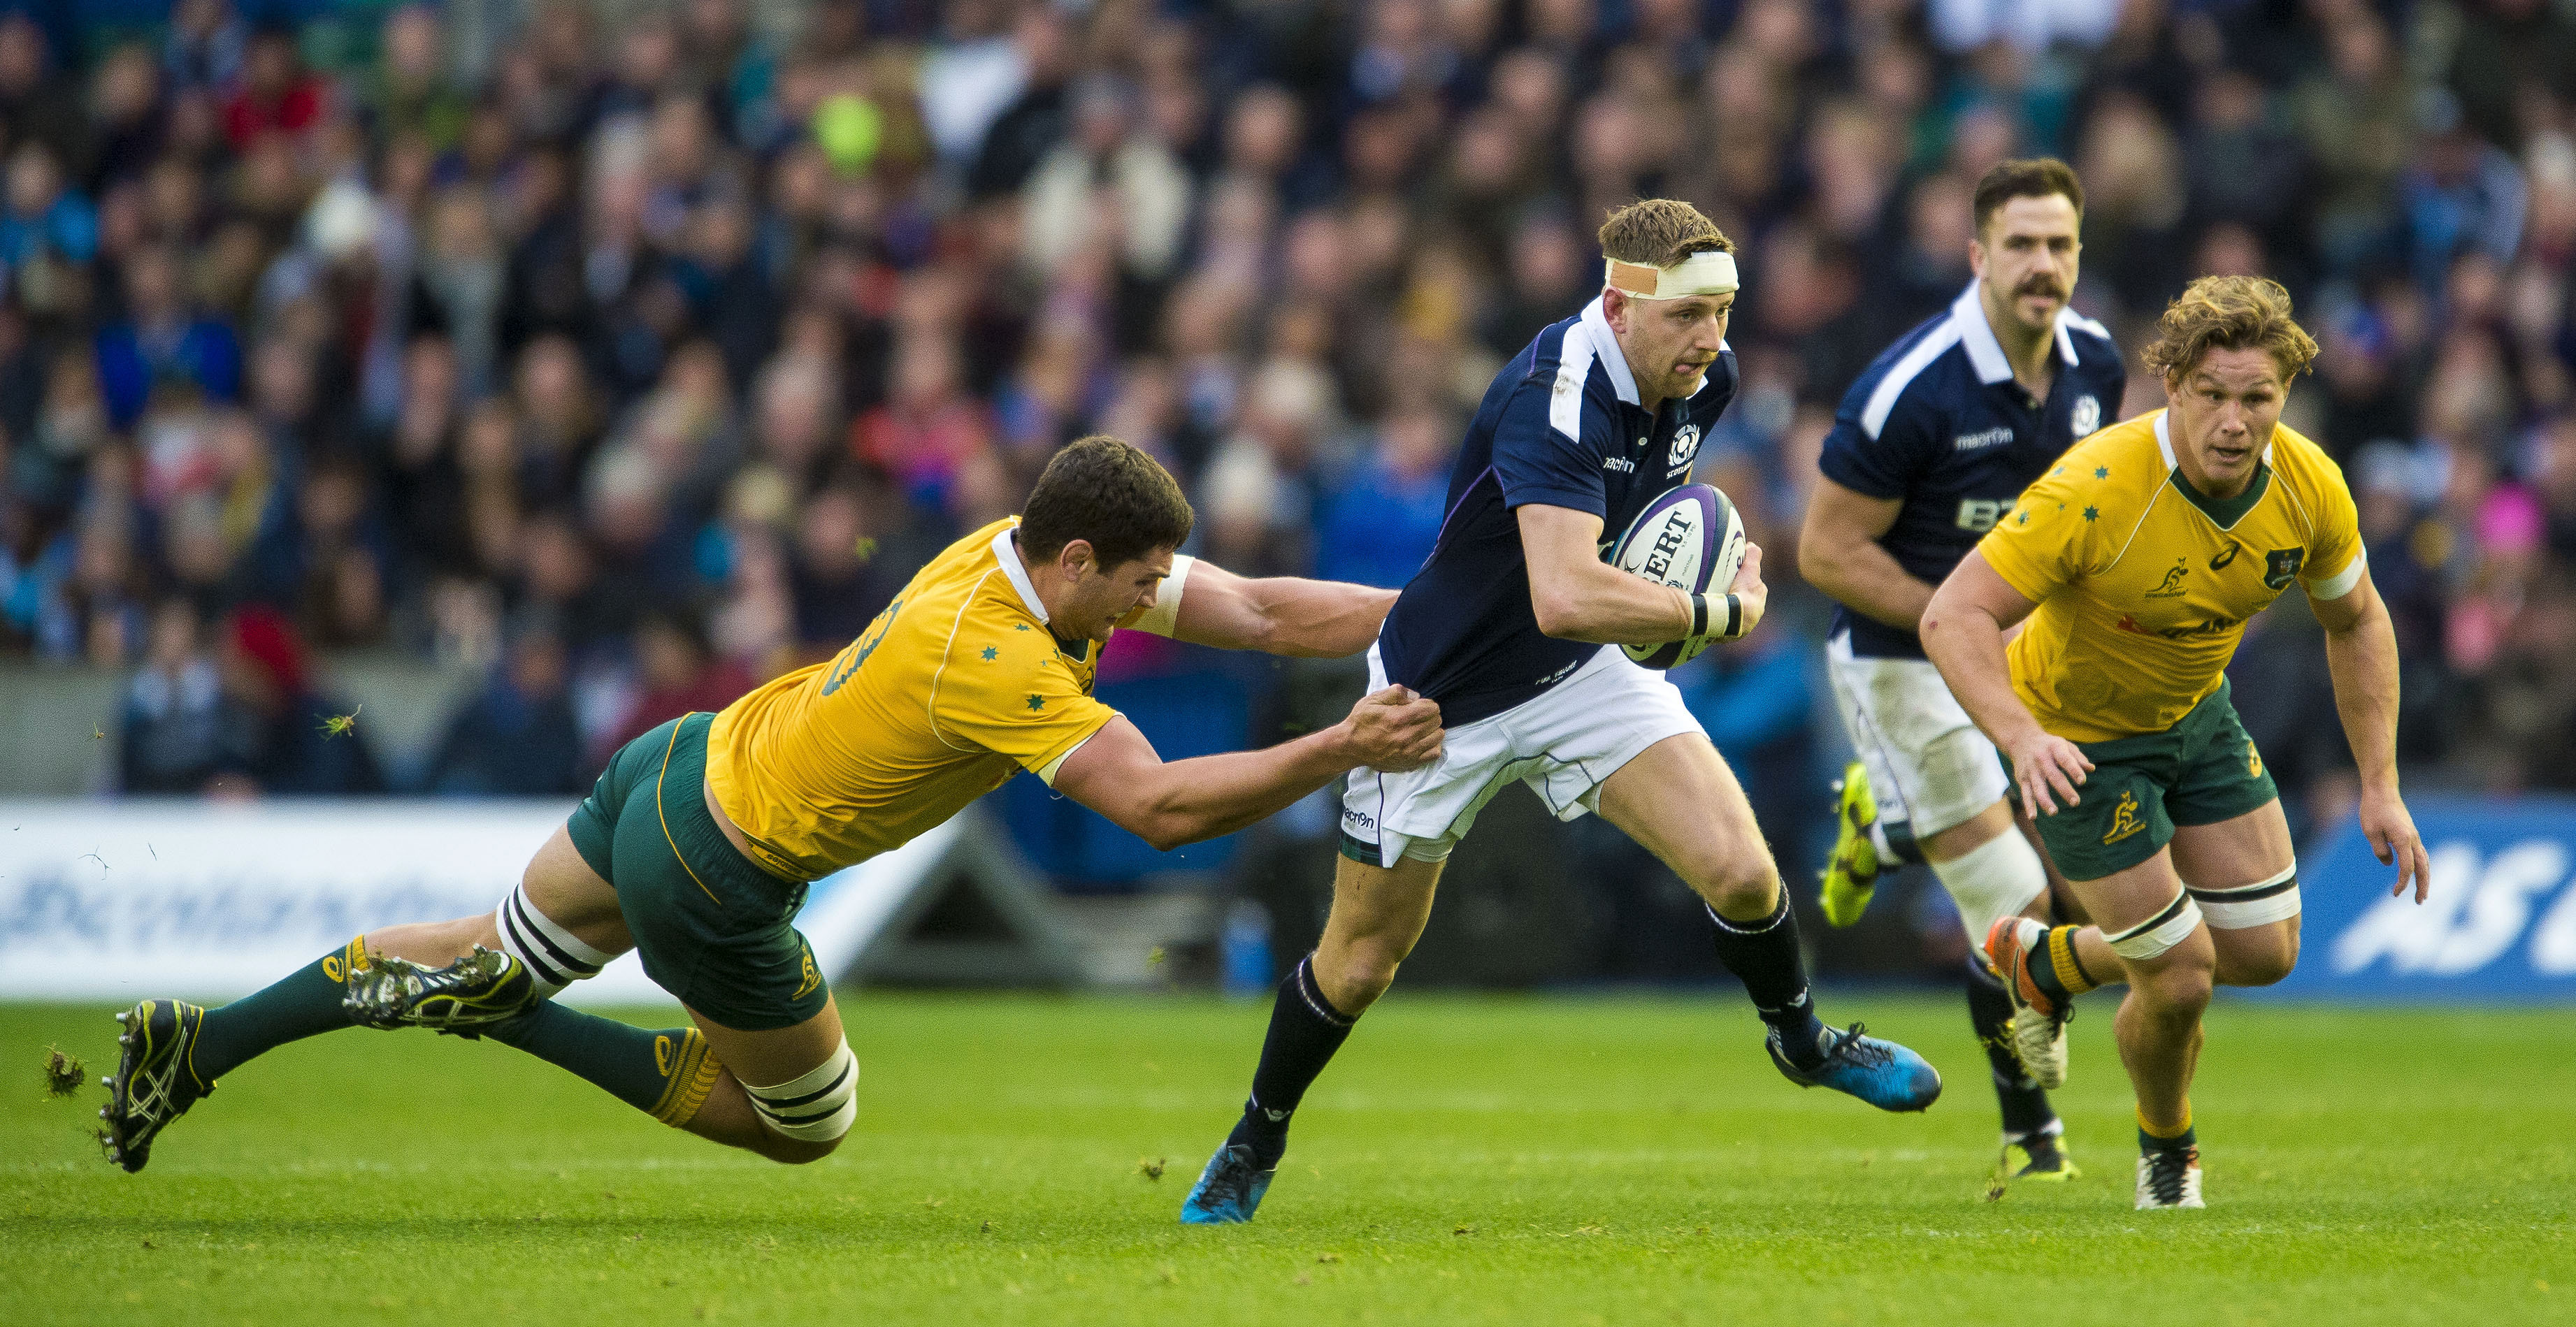 Finn Russell had a fine all-round game for Scotland against Australia.